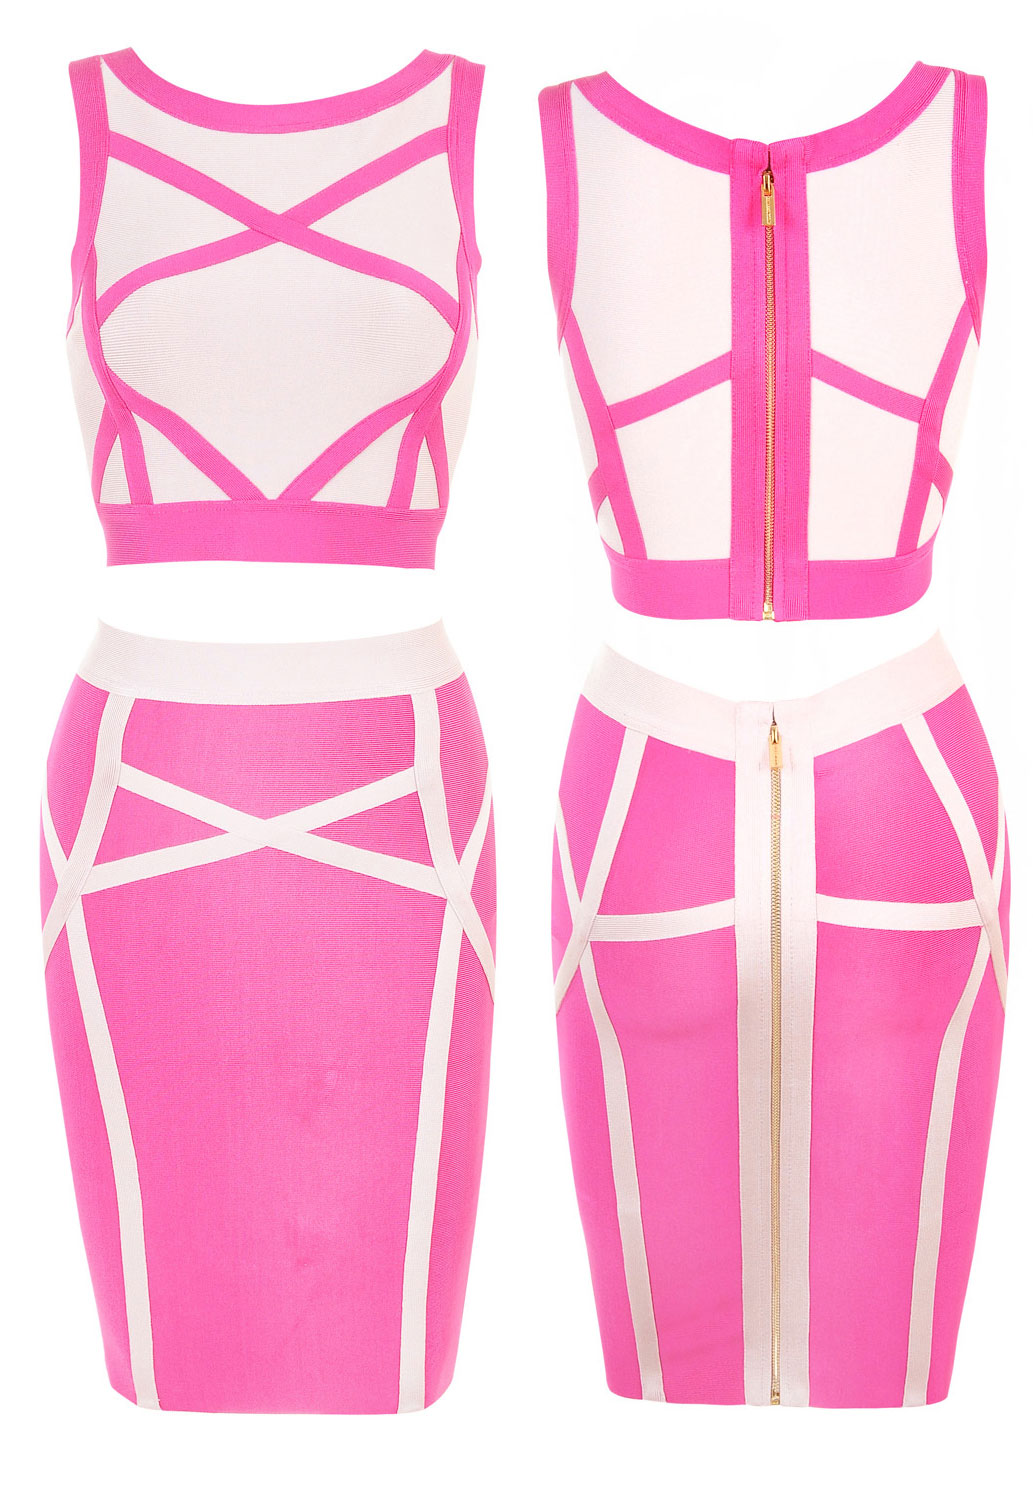 Wholesale Neon Pink White Bandage Skirt Set for Cheap